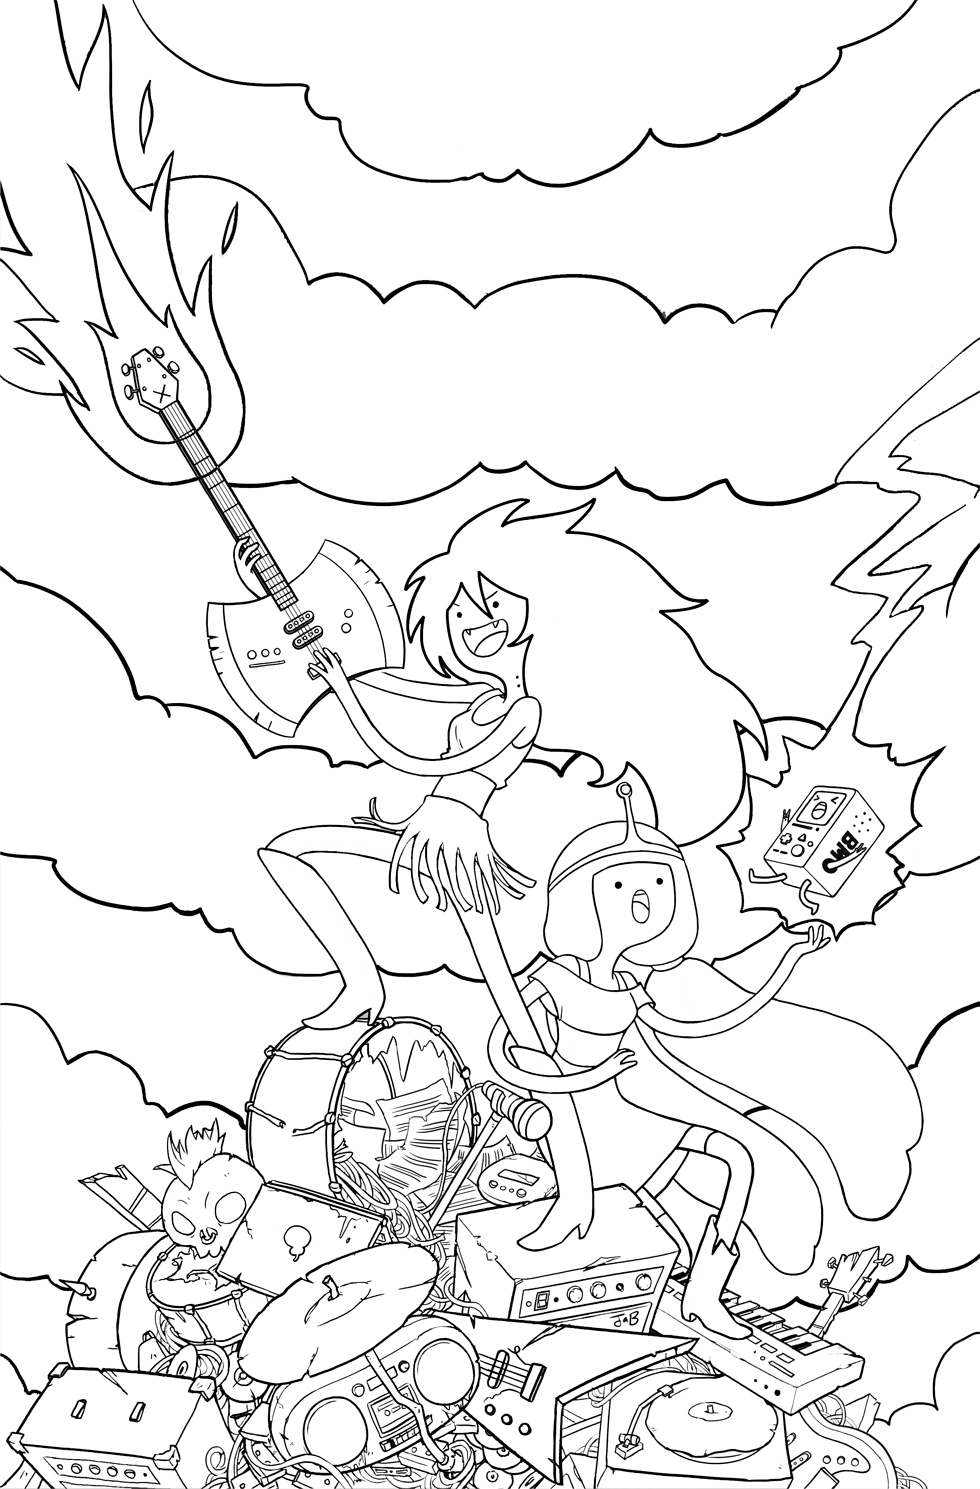 Adventure Time Coloring Pages - Best Coloring Pages For Kids